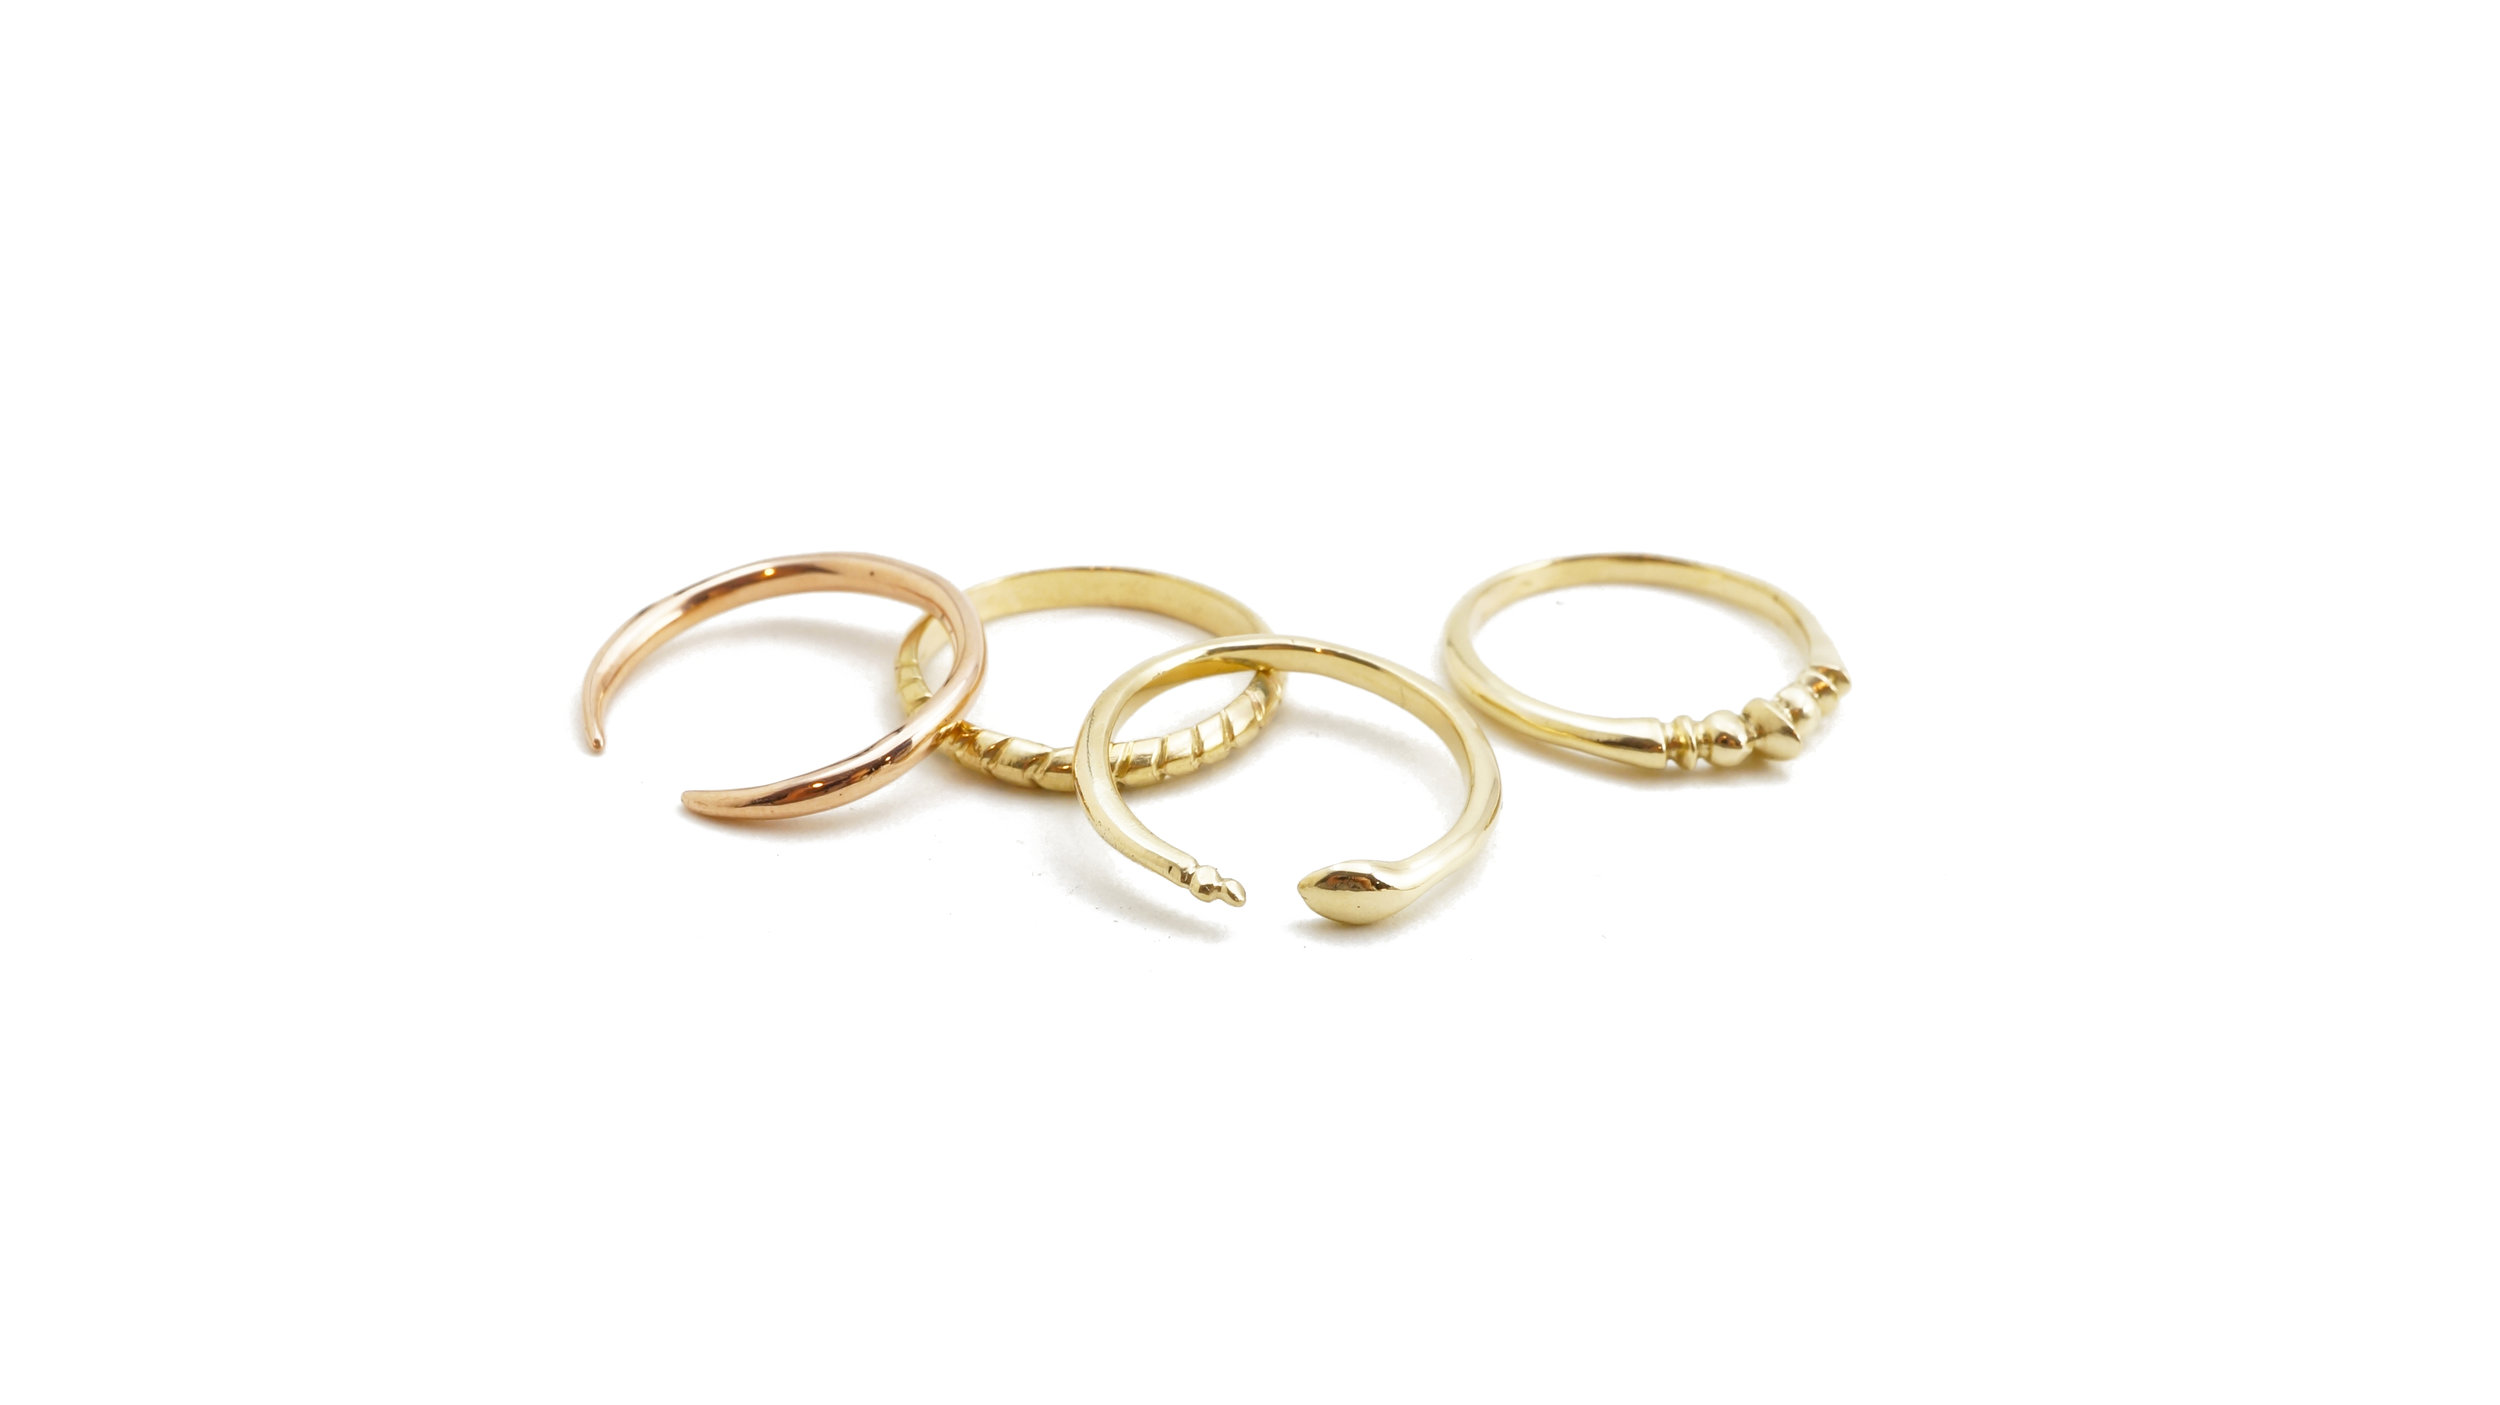 14k gold stacking rings by Archerade